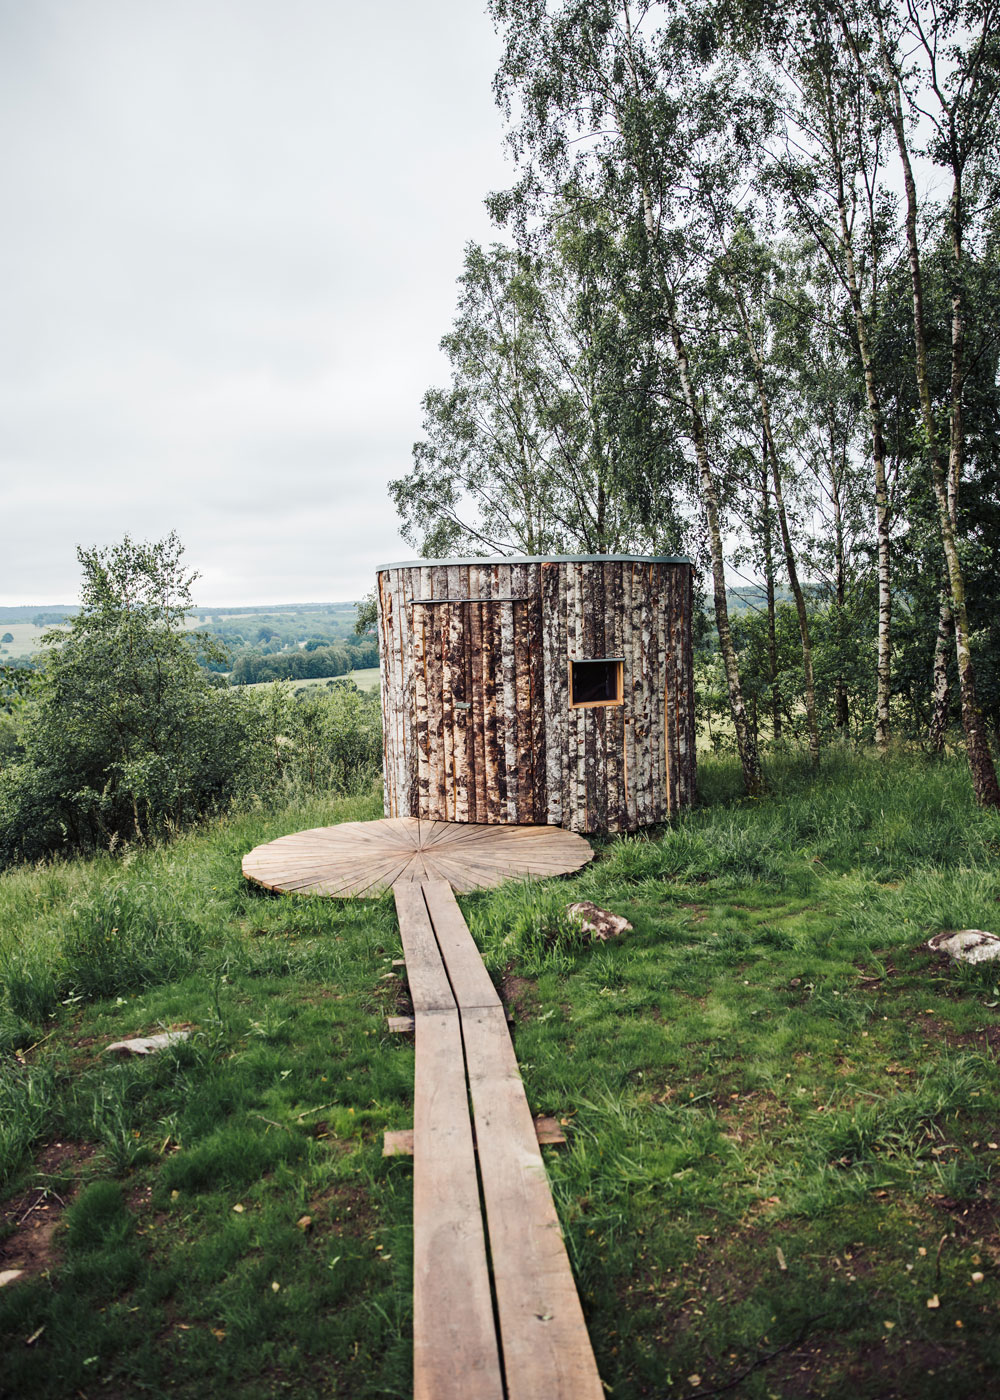 Hovdala nature area / the shelter Birka